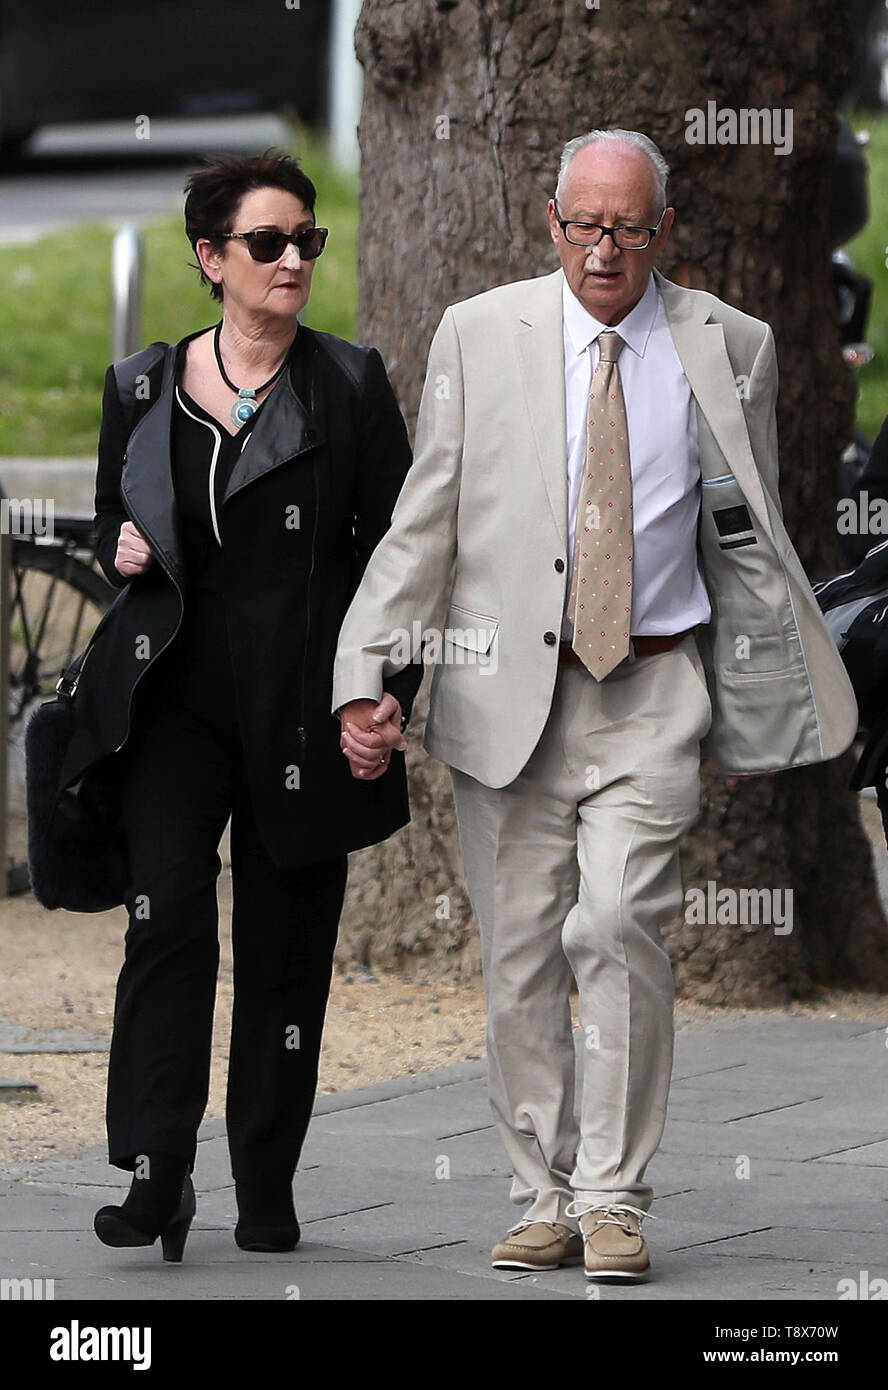 Ana Kriegel's parents, Geraldine and Patric Kriegel arriving at the Criminal Courts of Justice in Dublin as the trial of two boys accused of Ana Kriegel's murder continues. - Stock Image